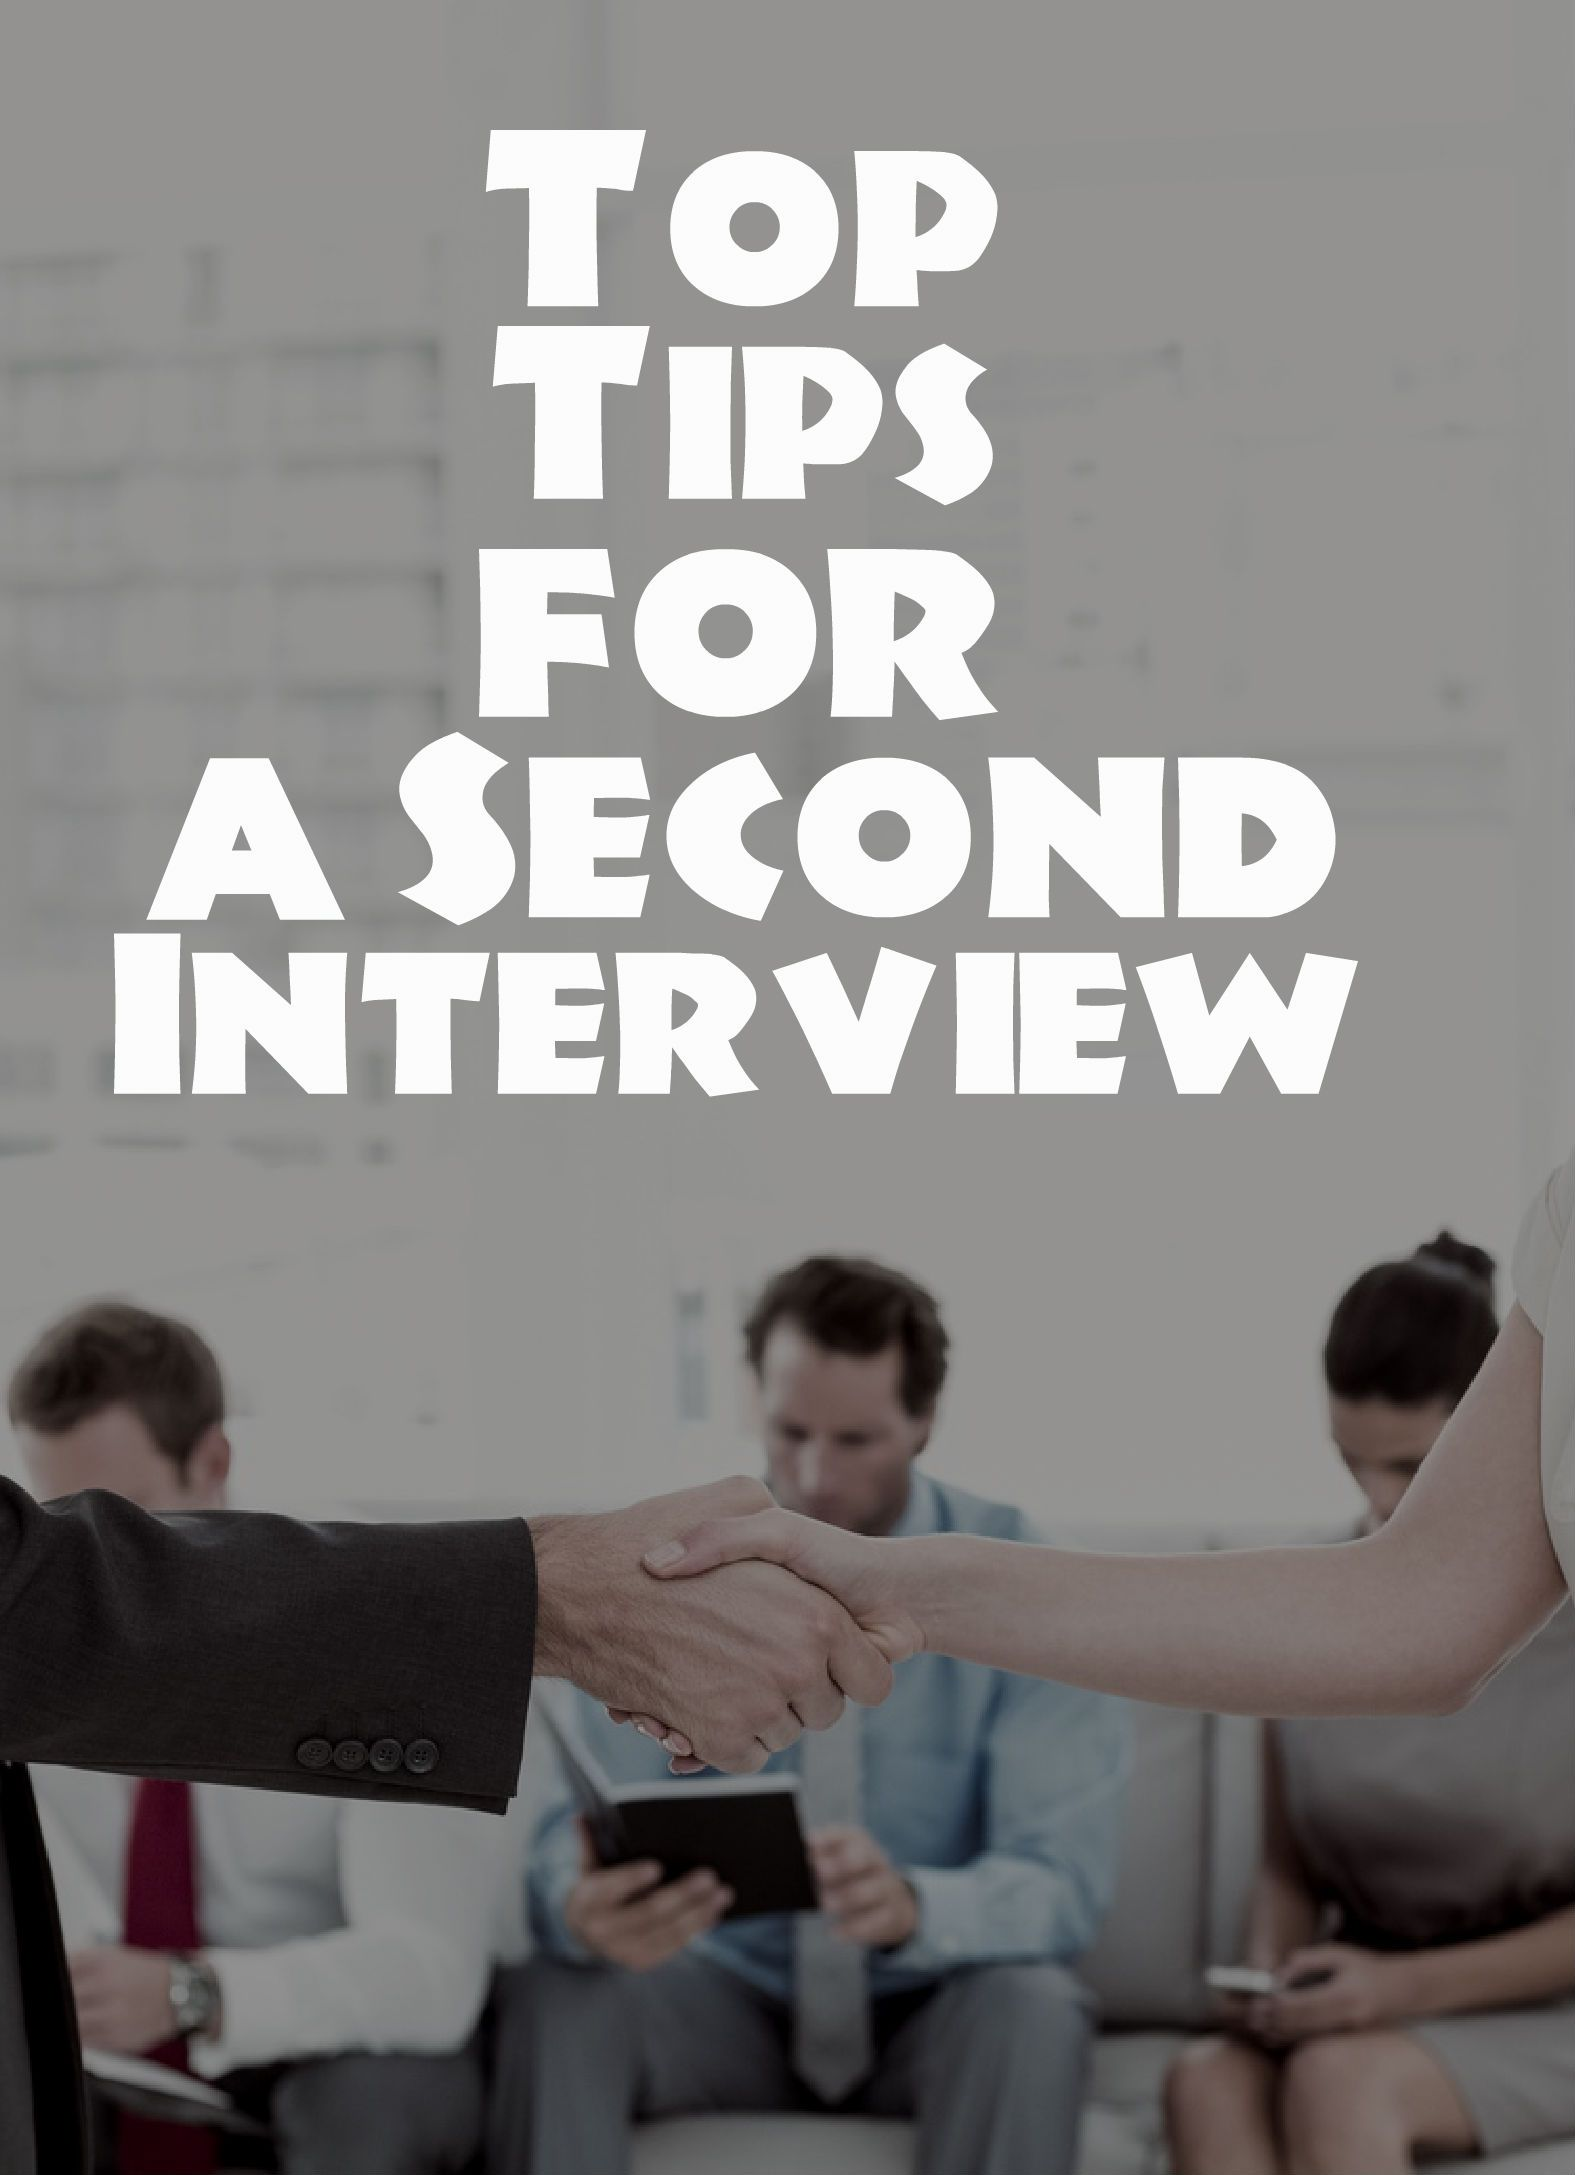 made the second interview great click here for our top tips on made the second interview great click here for our top tips on how to